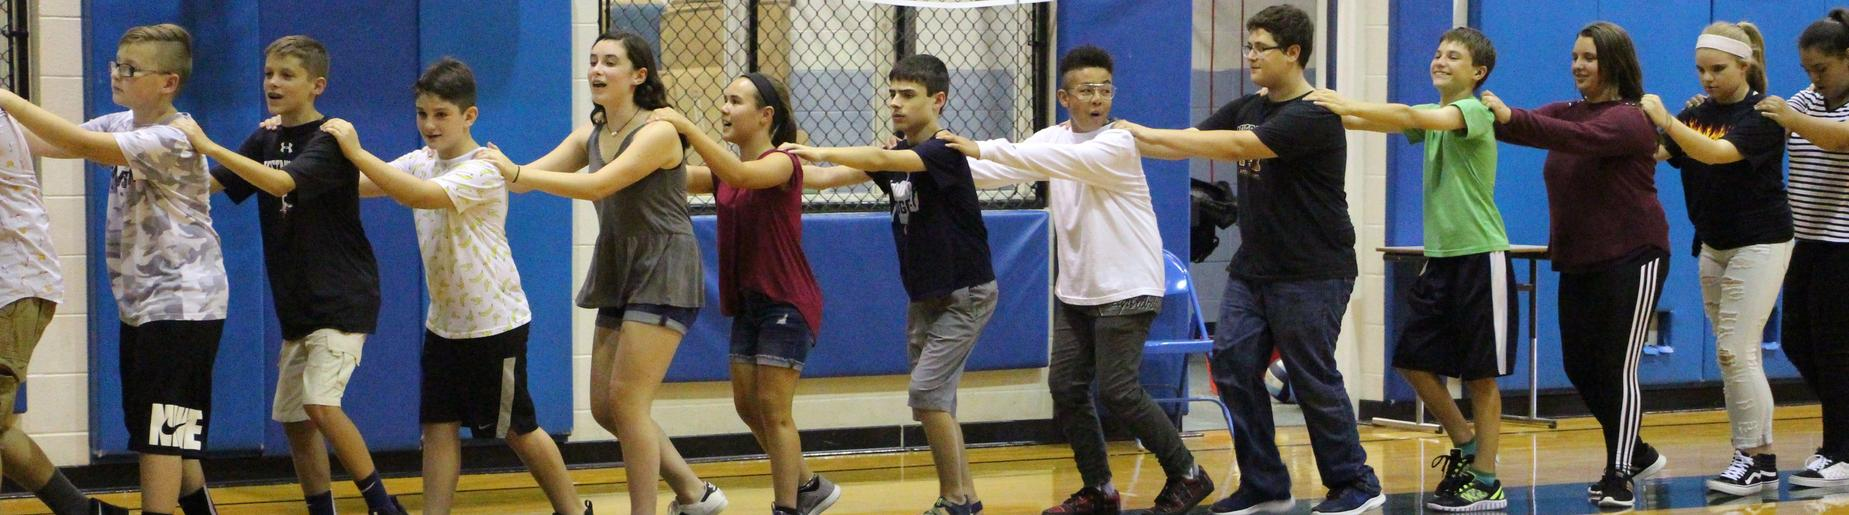 Gananda Middle Schoolers learn communication through a human chain exercise